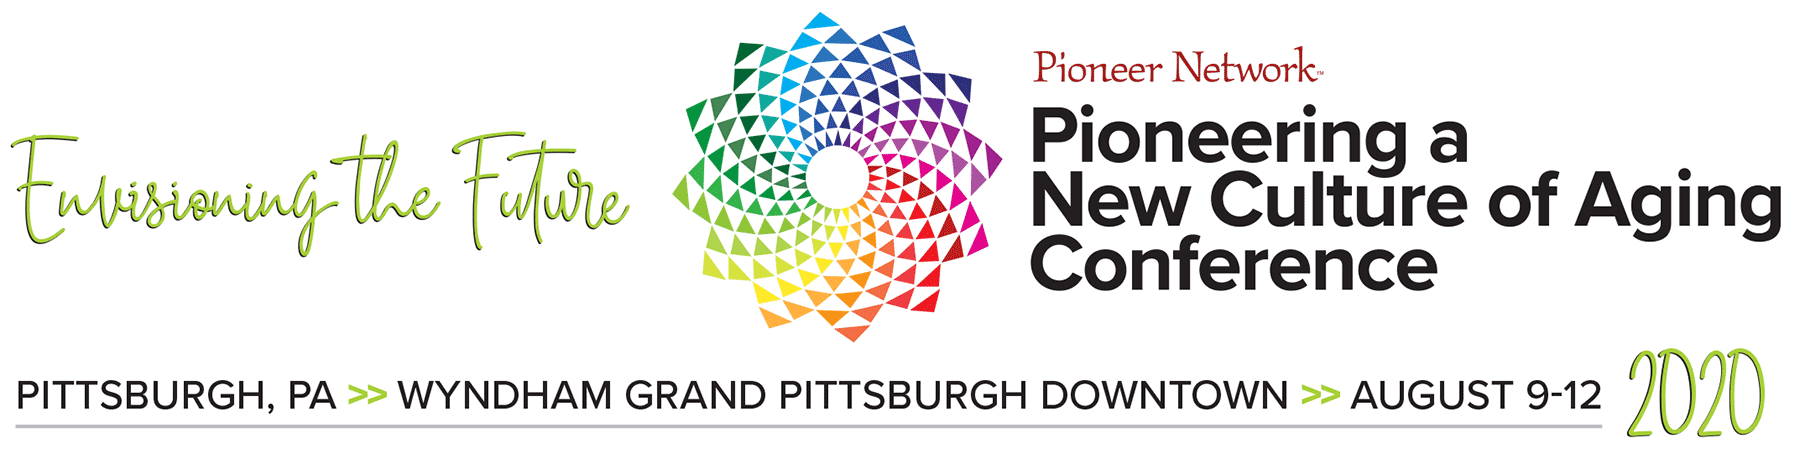 Pioneer Network Annual Conference | Pioneer Network